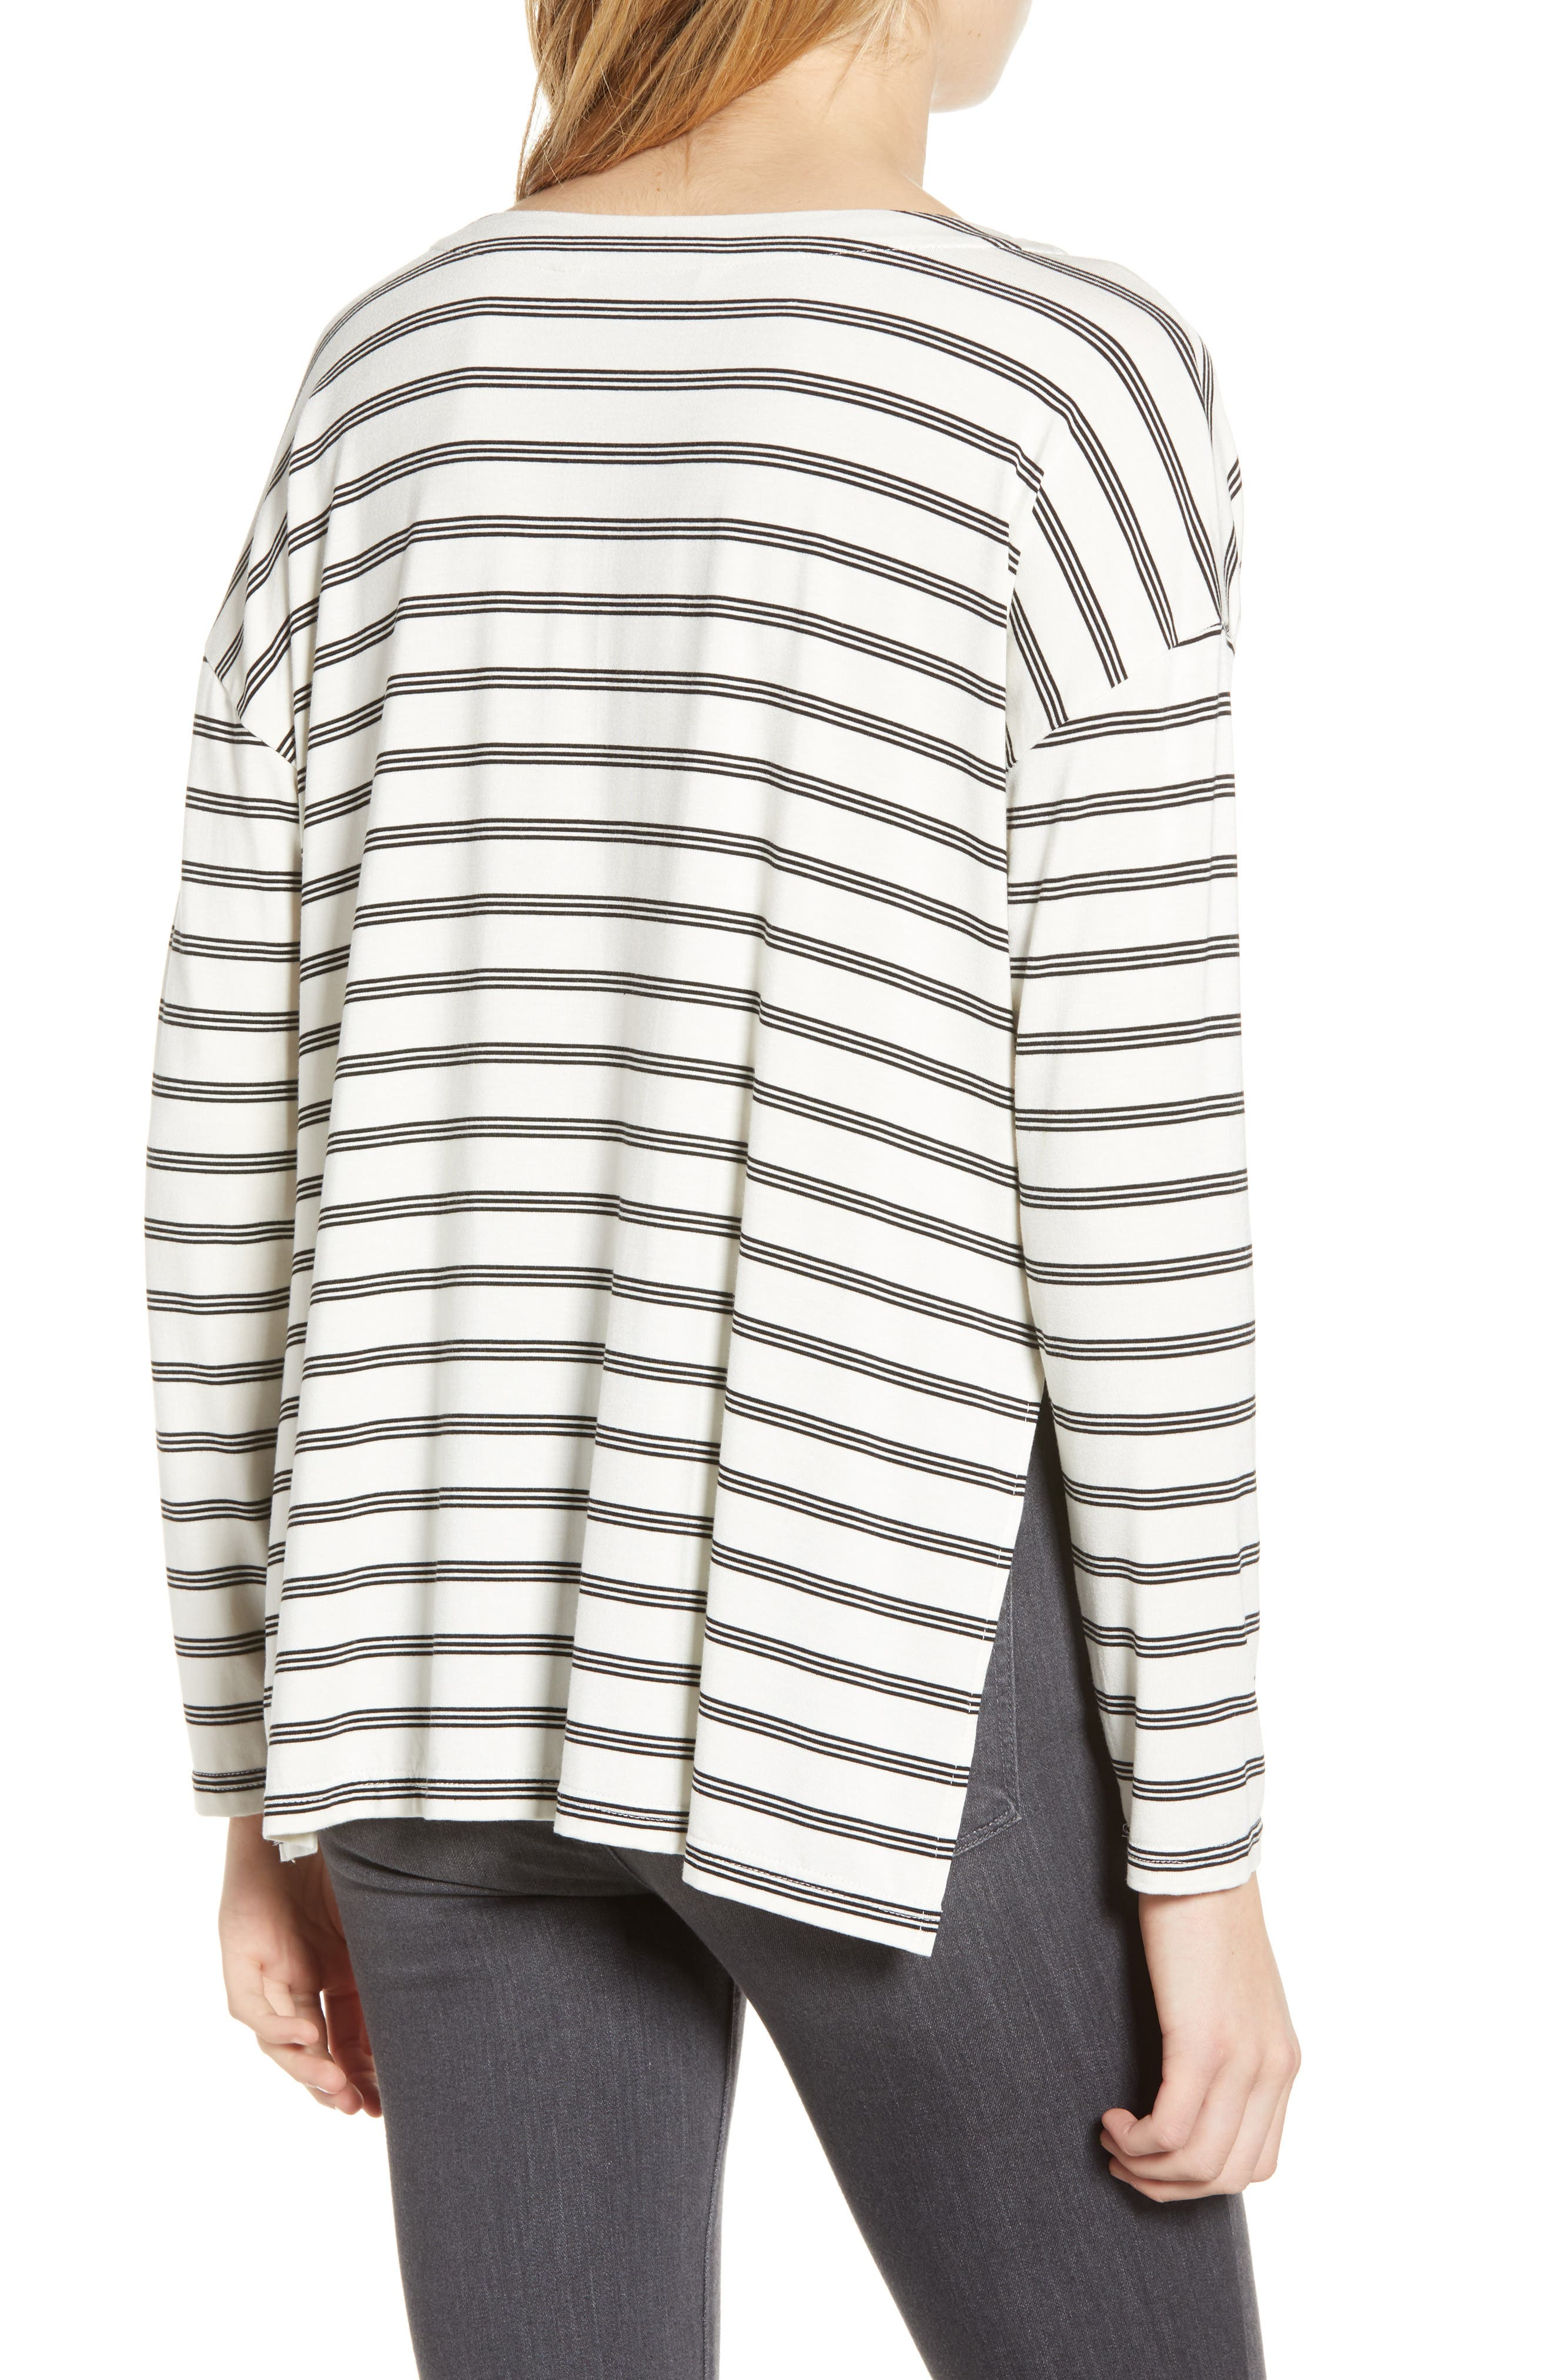 CUPCAKES AND CASHMERE,                             Roxanna Stripe Knit Top,                             Alternate thumbnail 2, color,                             IVORY